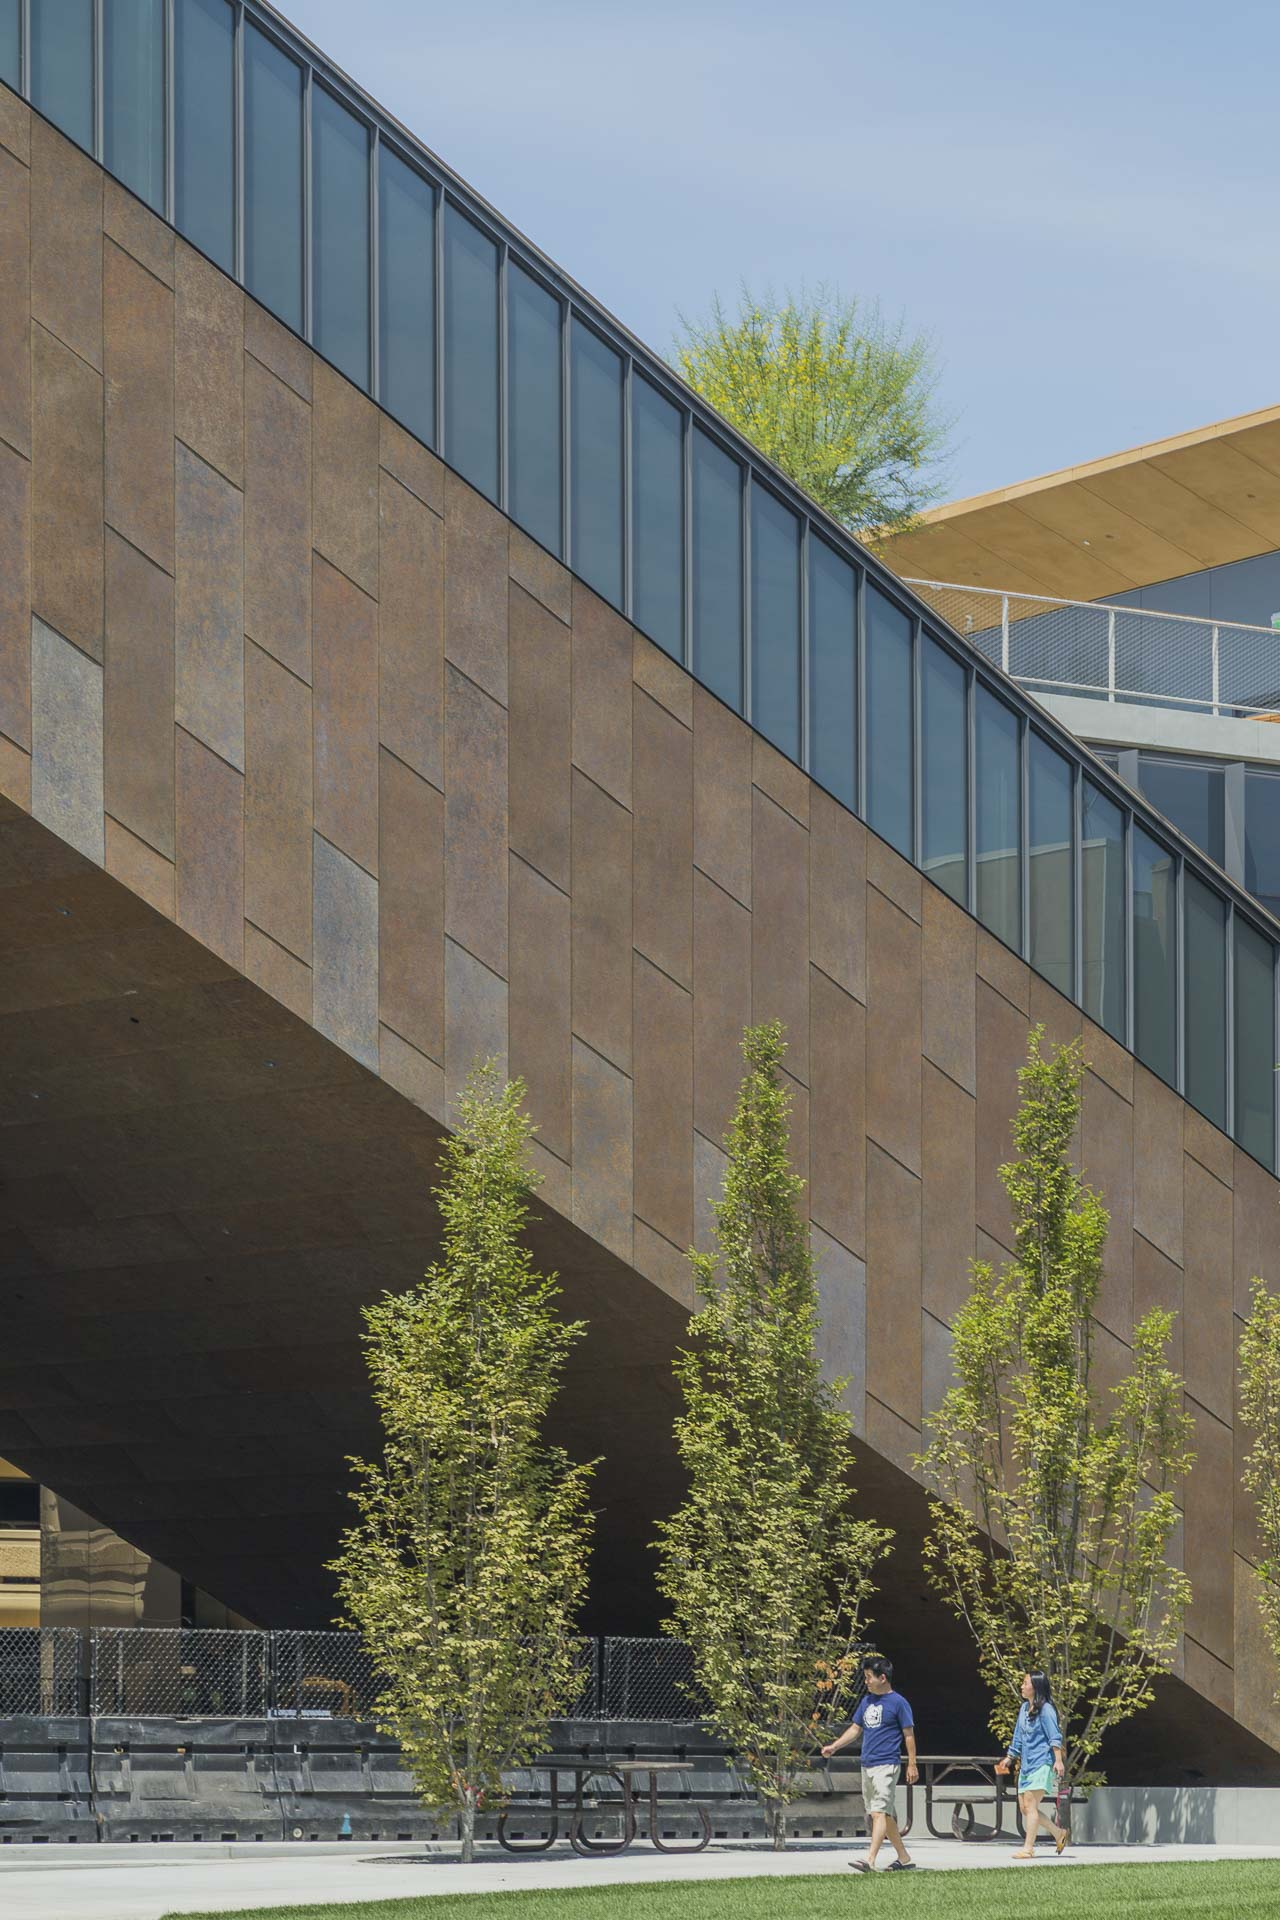 Detail of the Zinc panels on-site at the McMurtry Building in California.